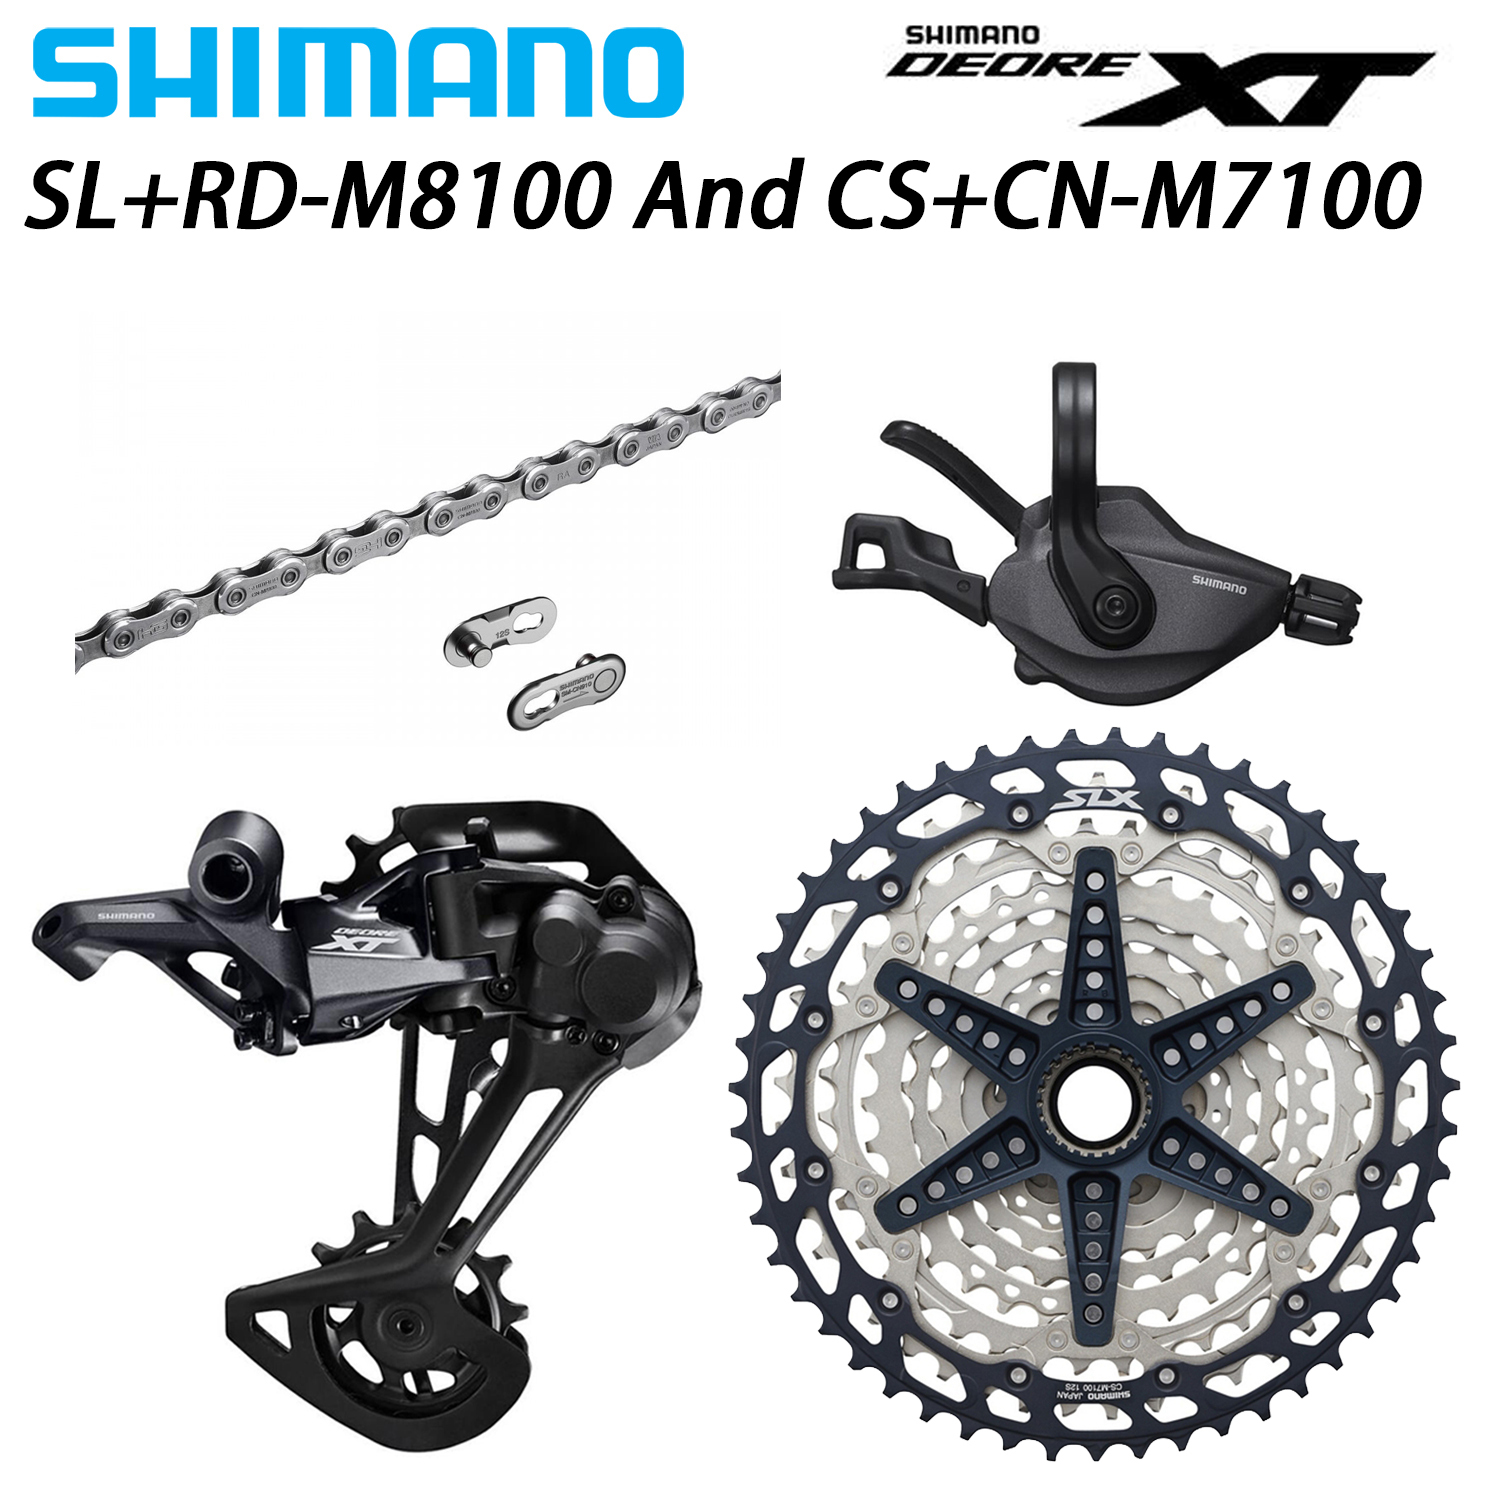 SHIMANO DEORE XT M8100 12 Speed Groupset MTB Bike 1x12-Speed 51T CS+HG M7100 + SL+RD M8100 shifter Rear Derailleur image